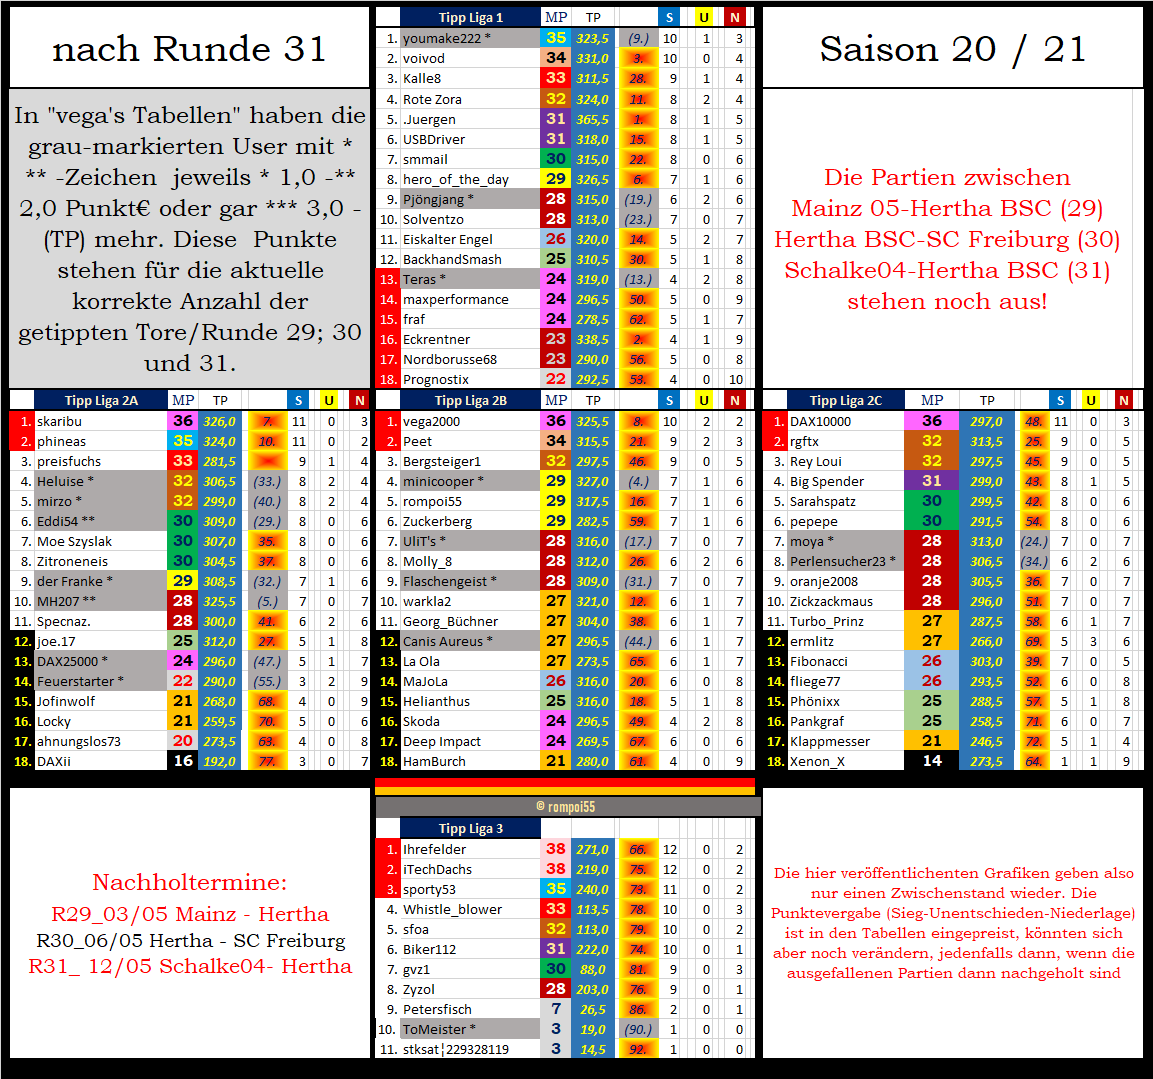 tabelle_zw_nach_runde_31.png